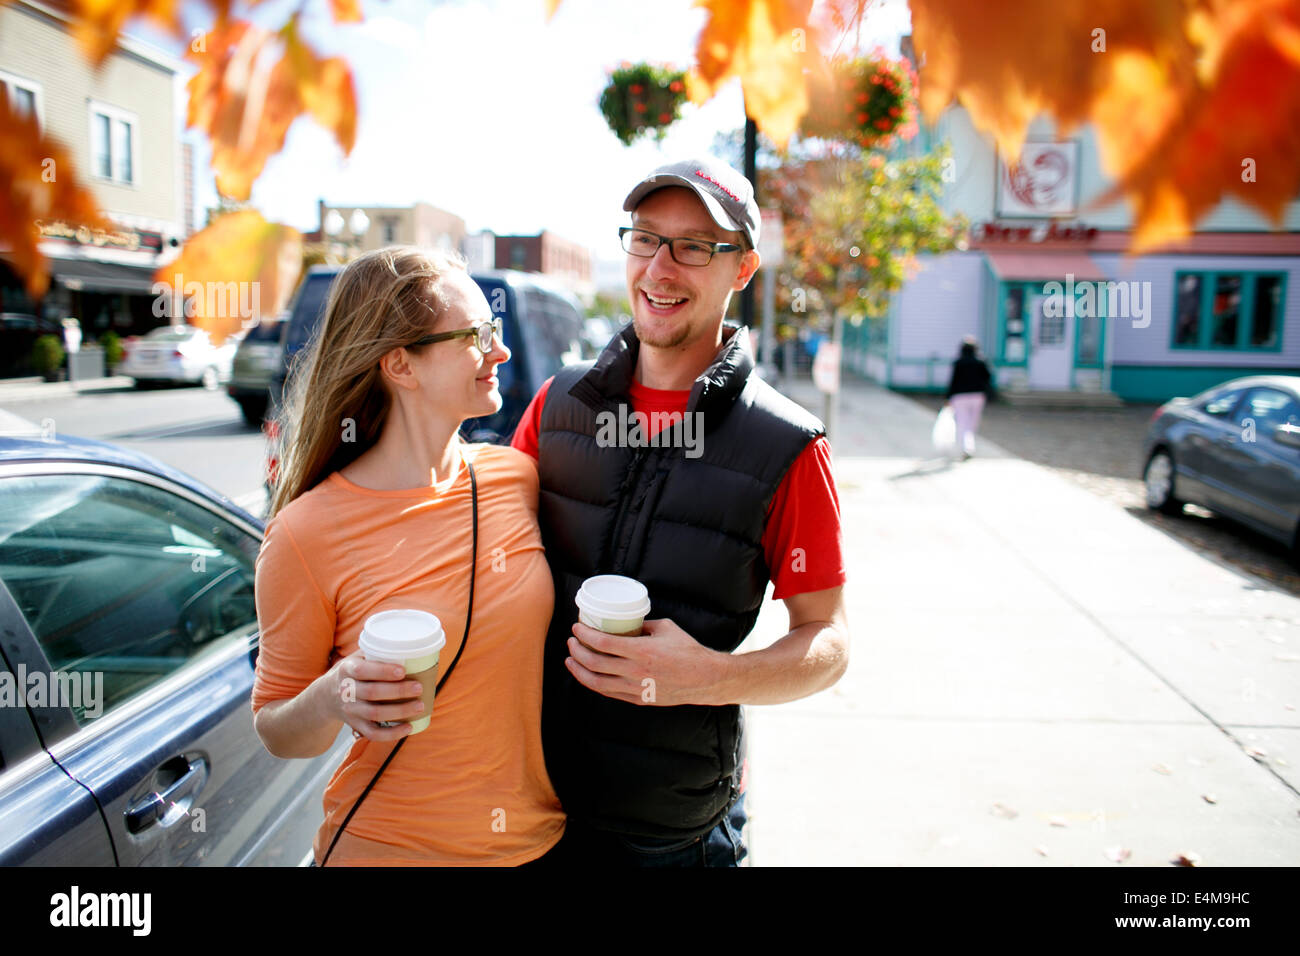 Couple Holding Coffee Cups on Sidewalk - Stock Image